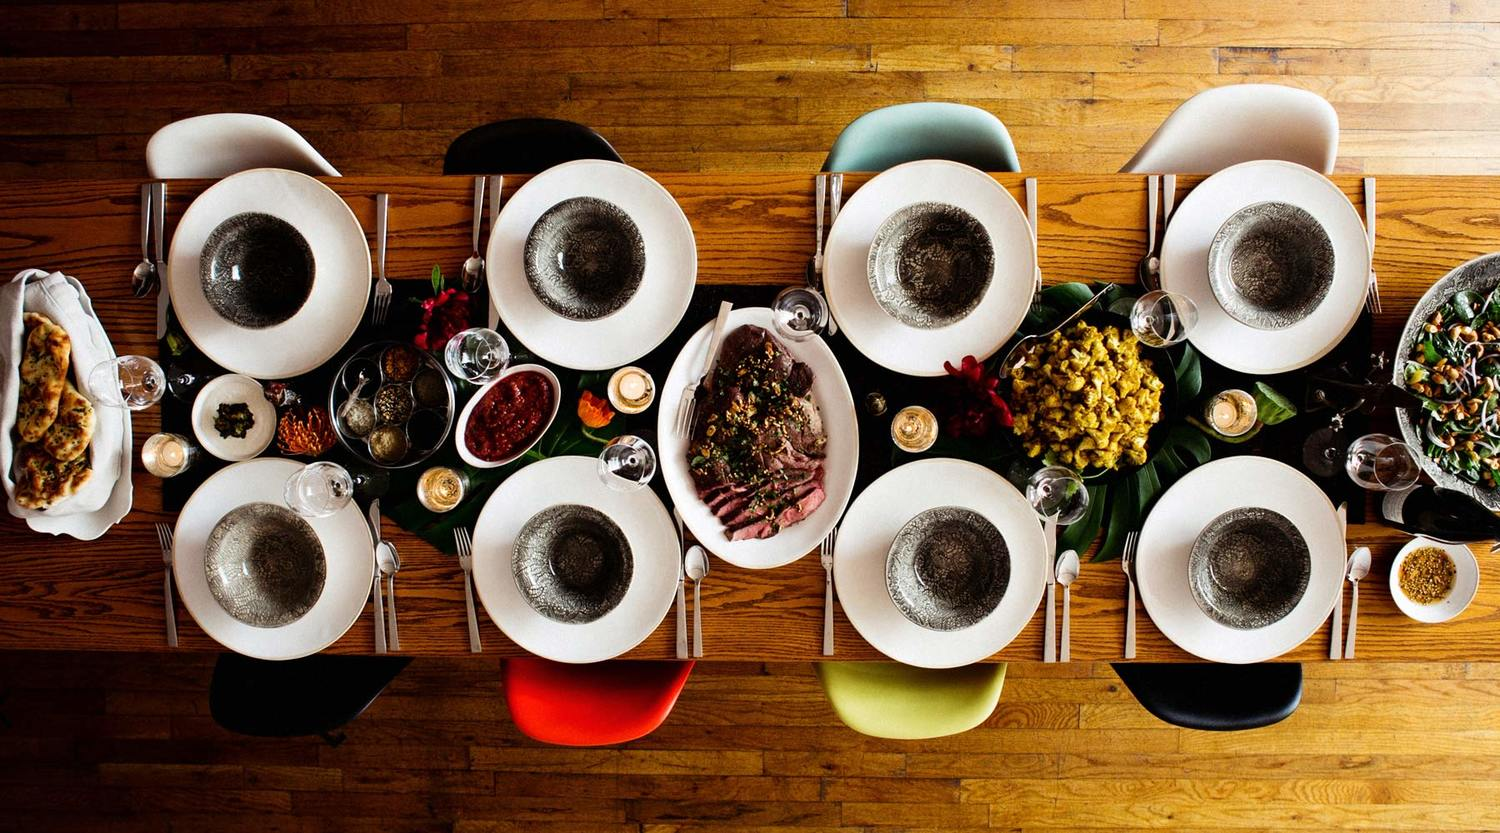 5 tips so your dinner party doesn't suck — chef mike ward